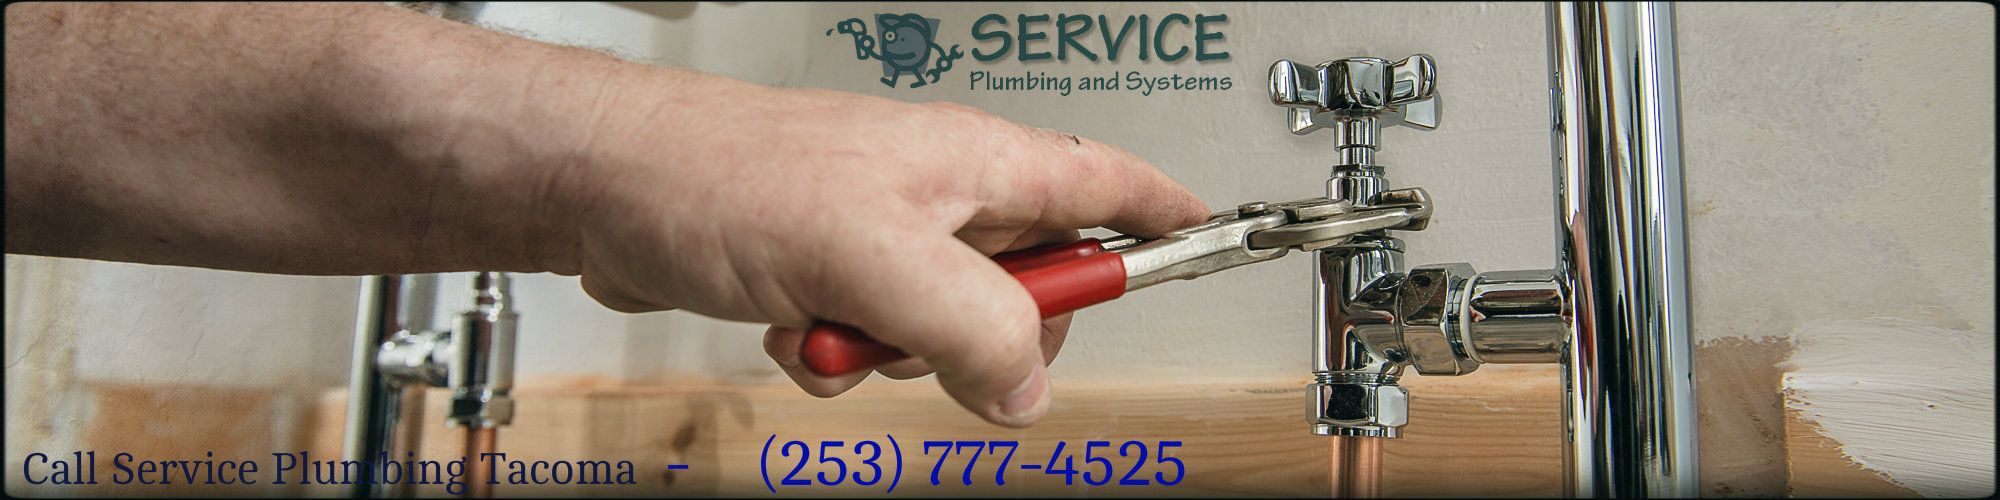 Pin By Plumber Tacoma On Emergency Plumbing Tacoma Wa Plumbing Problems Plumbing Plumbing Emergency